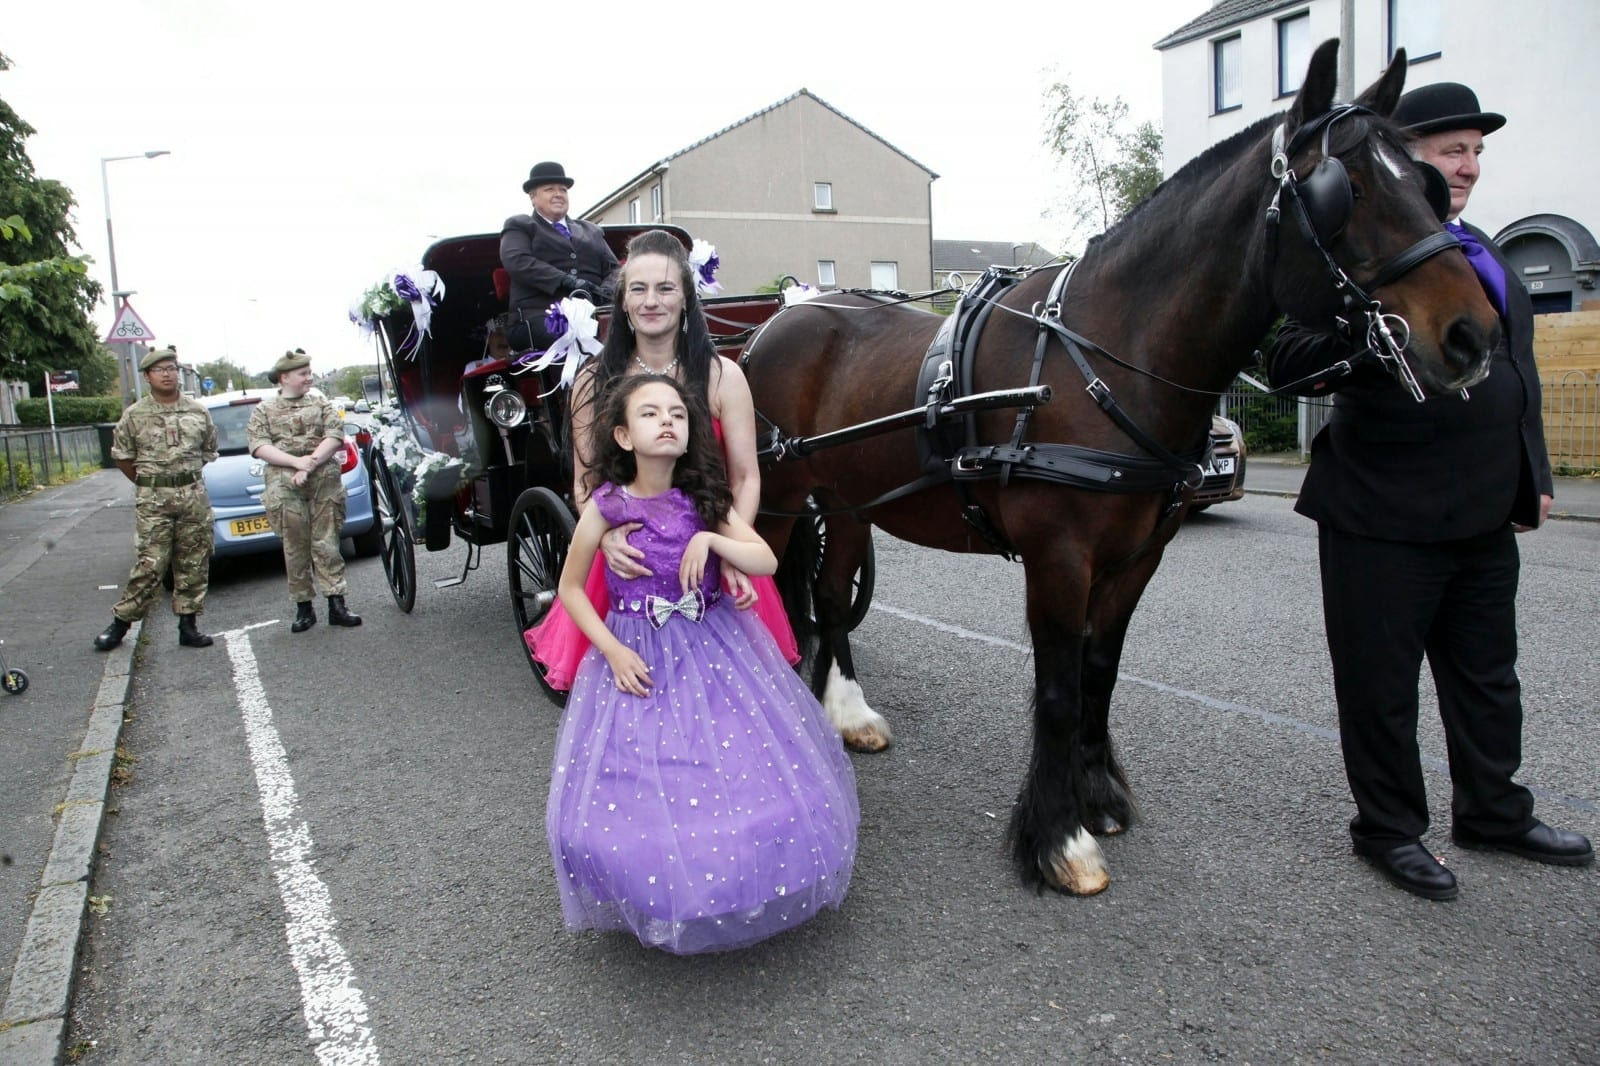 Disabled Schoolgirl Who Faced Leaving School With No Prom Had Special One Organised For Her